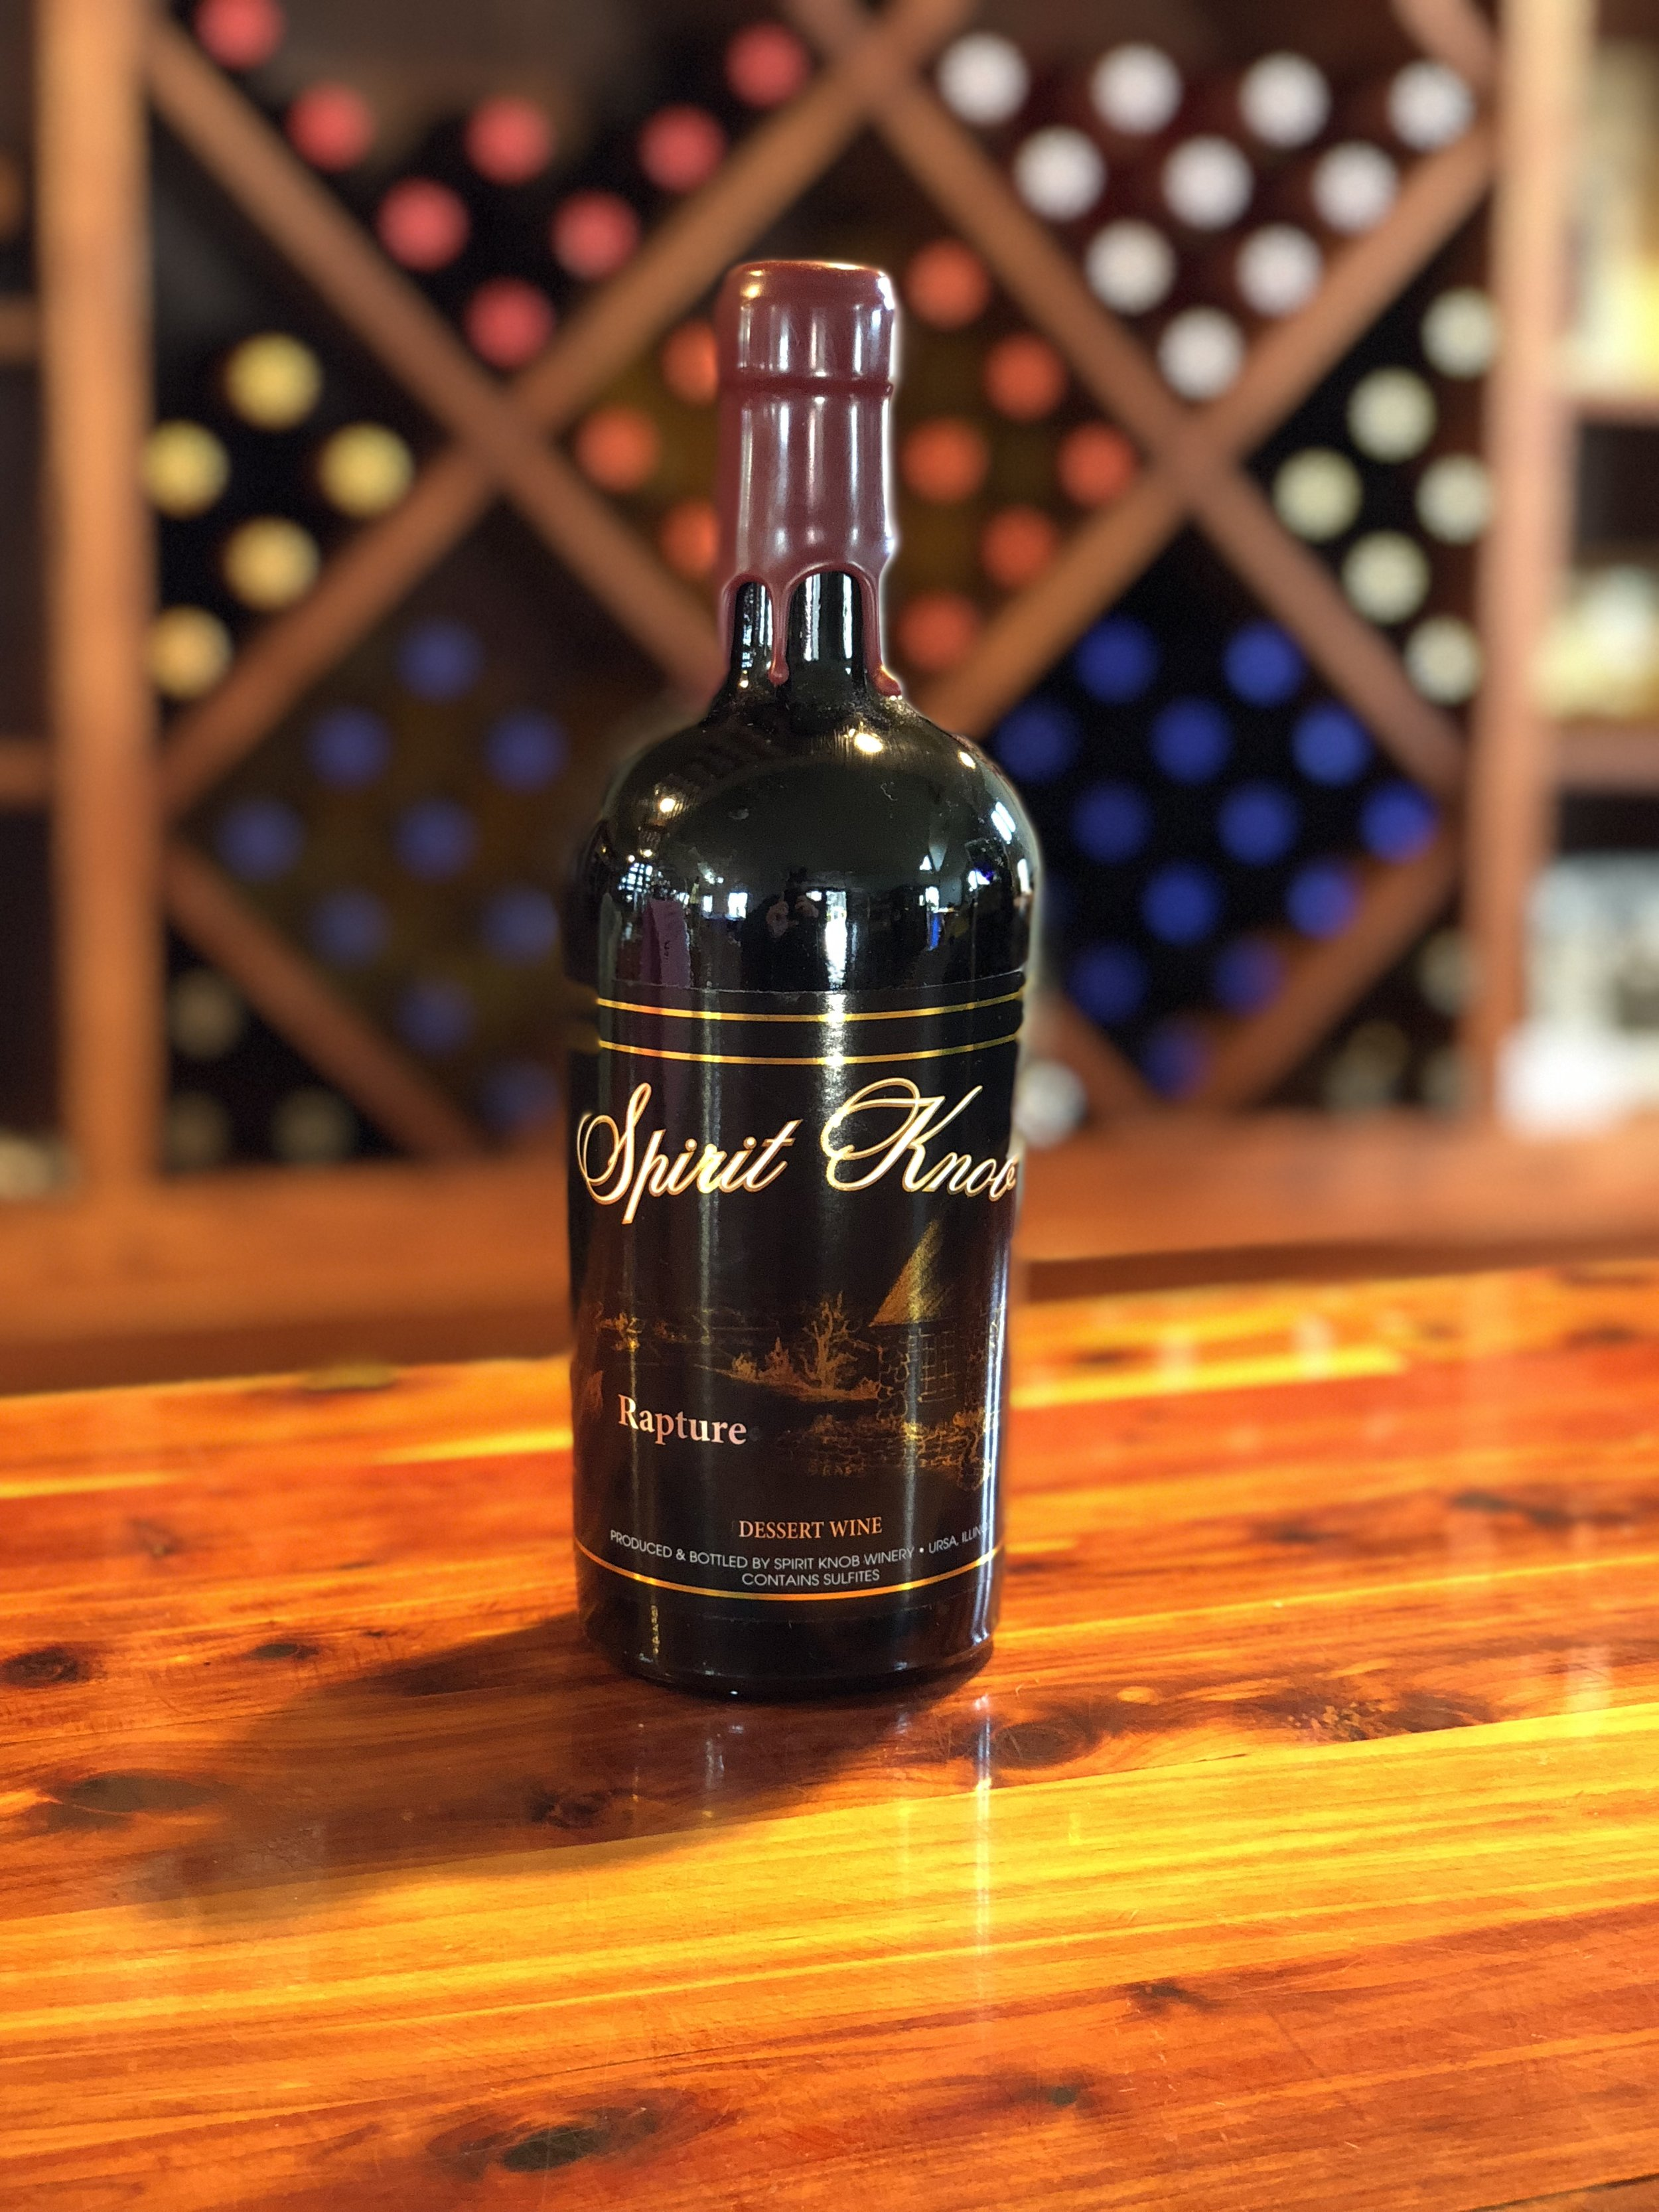 Rapture - Dessert wine with hints of cherry and raspberry. Great cigar wine!Click here to buy now!